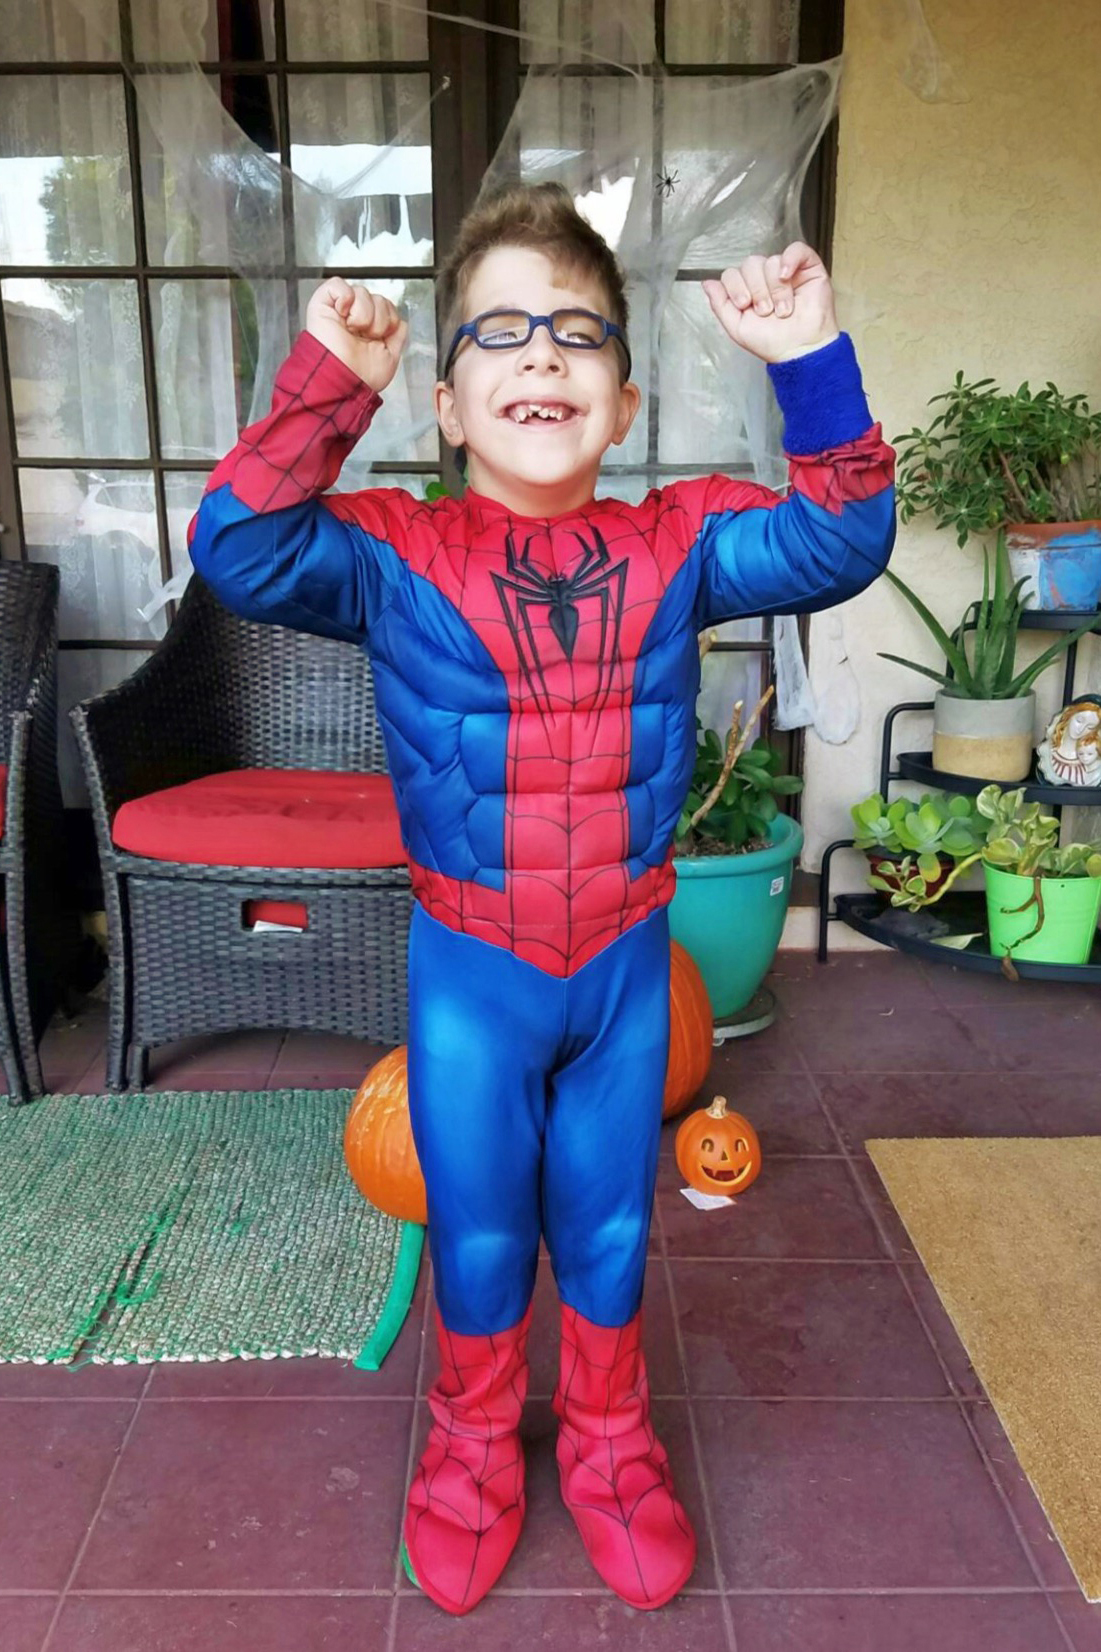 stevie fan club, halloween 2016, spiderman costume, parenthood, expectations, holidays, special needs parenting